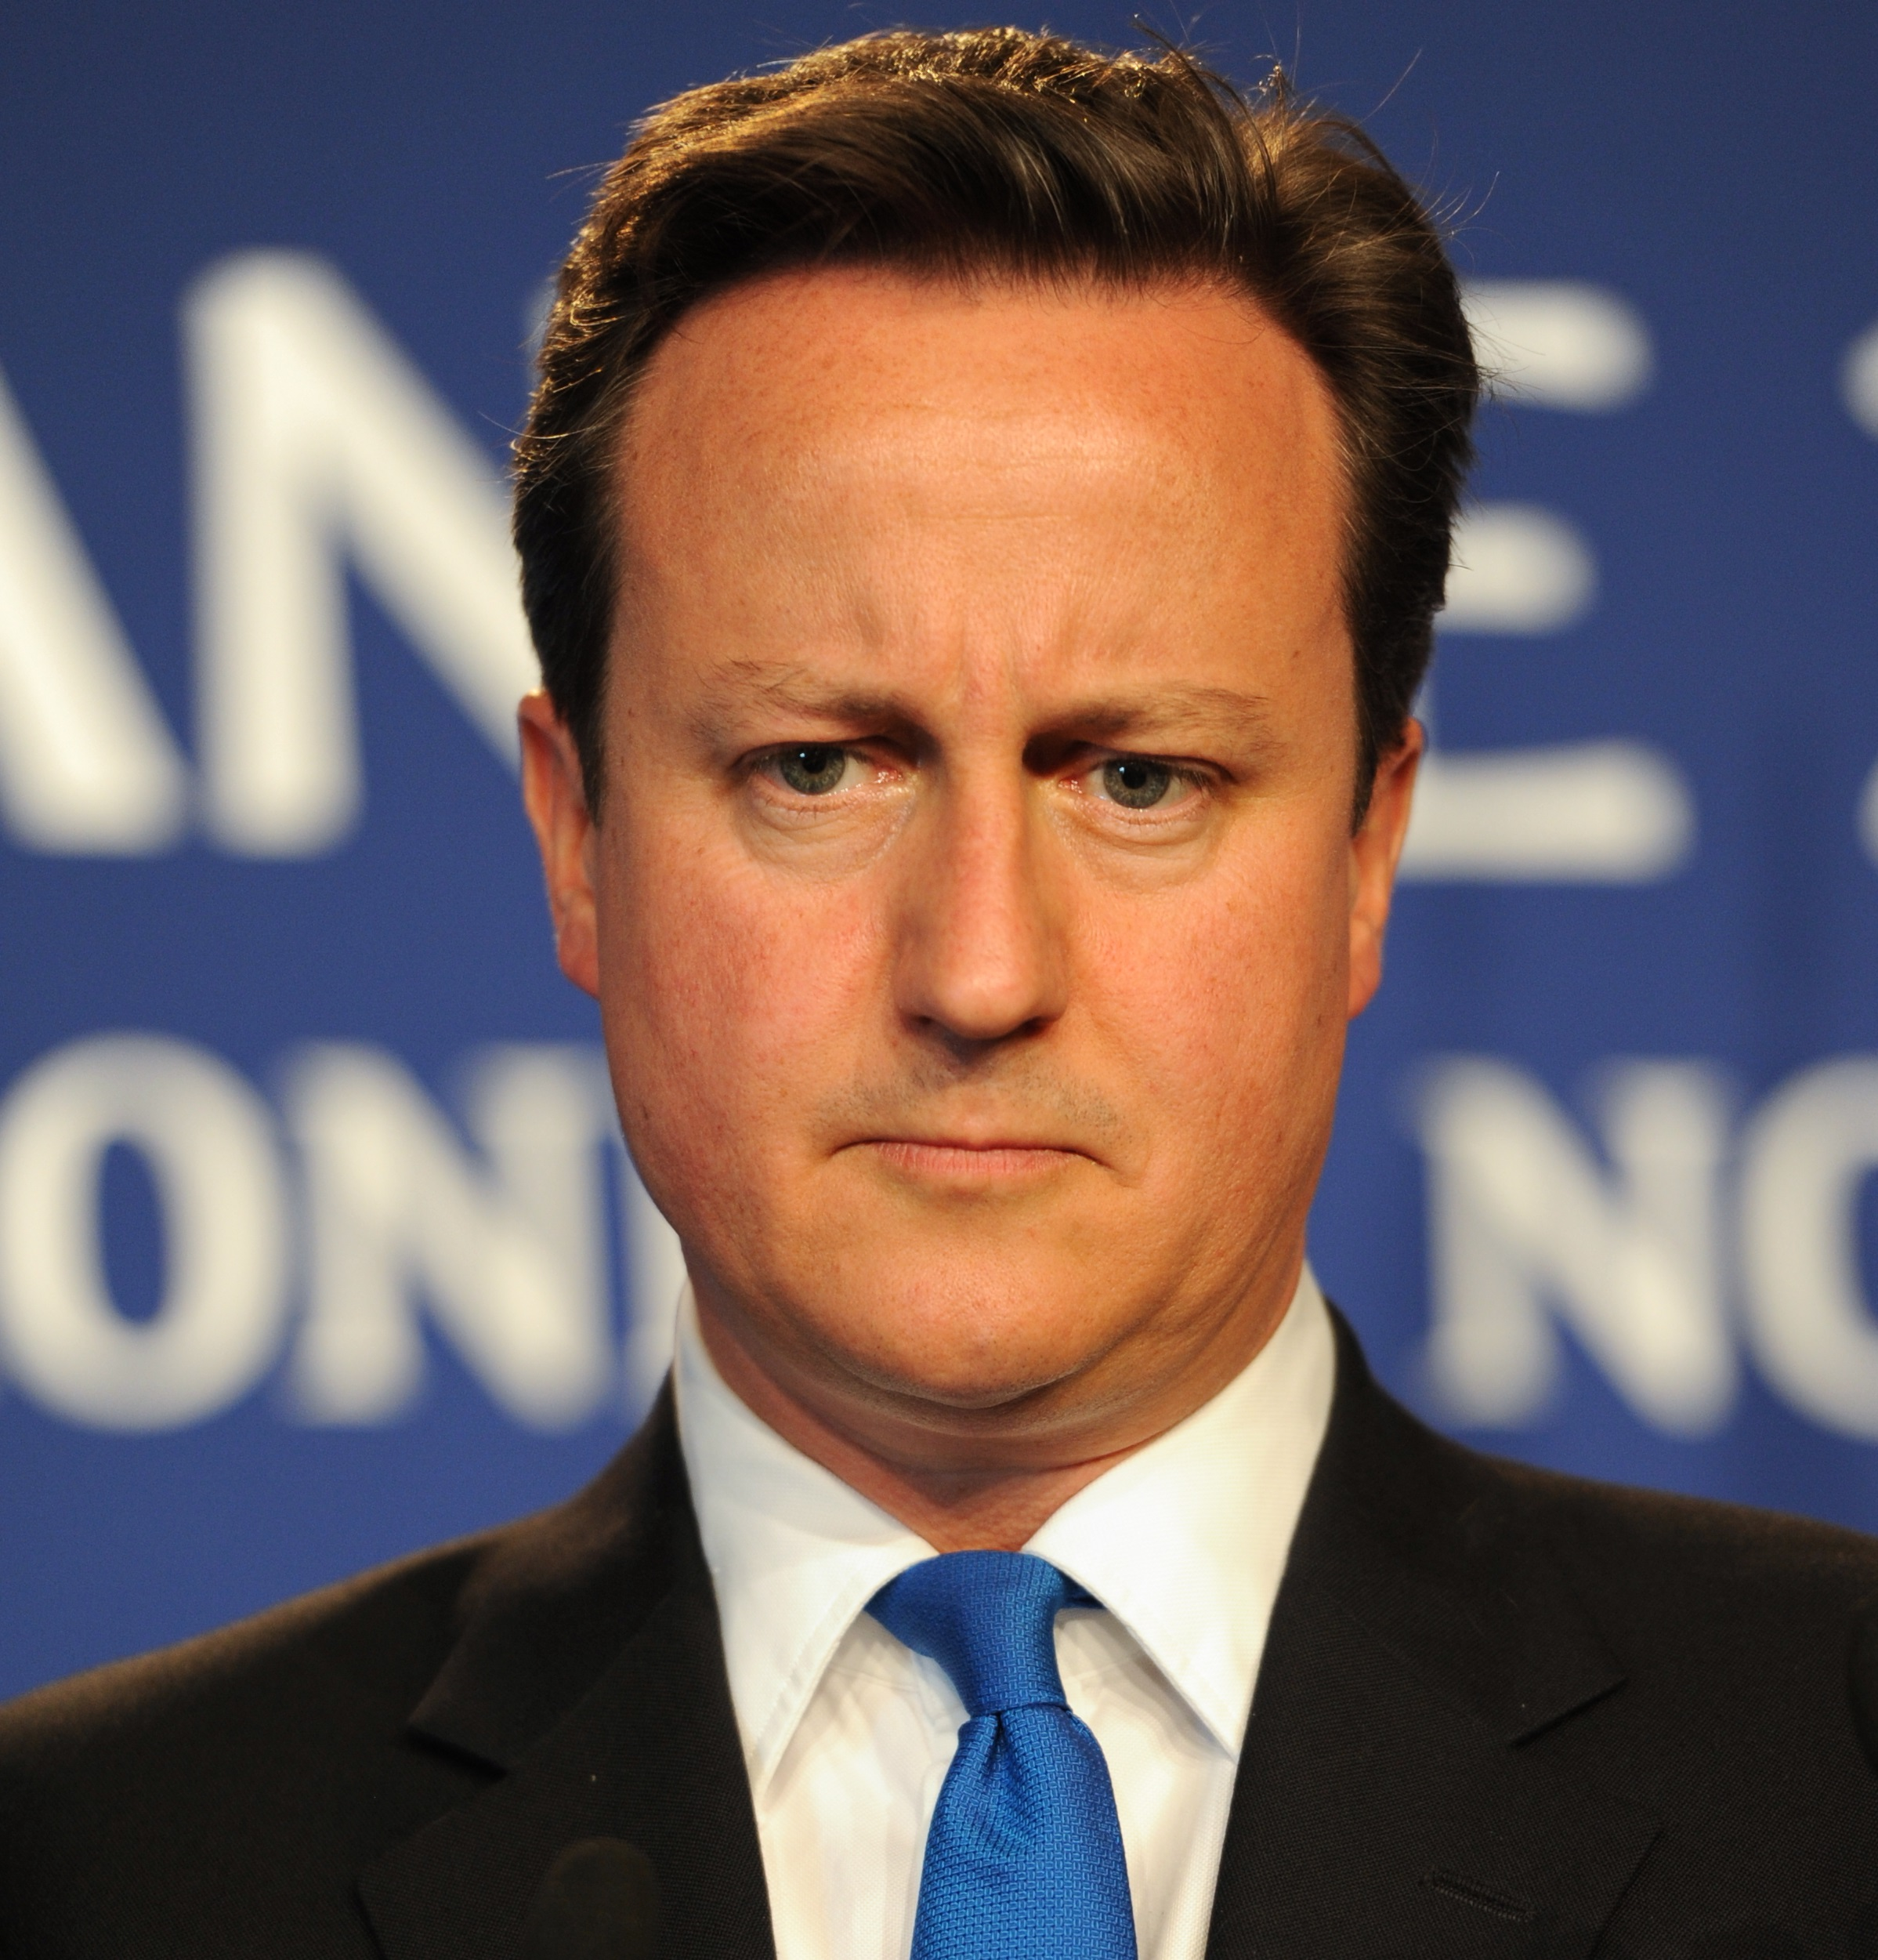 David_Cameron_at_the_37th_G8_Summit_in_Deauville_104